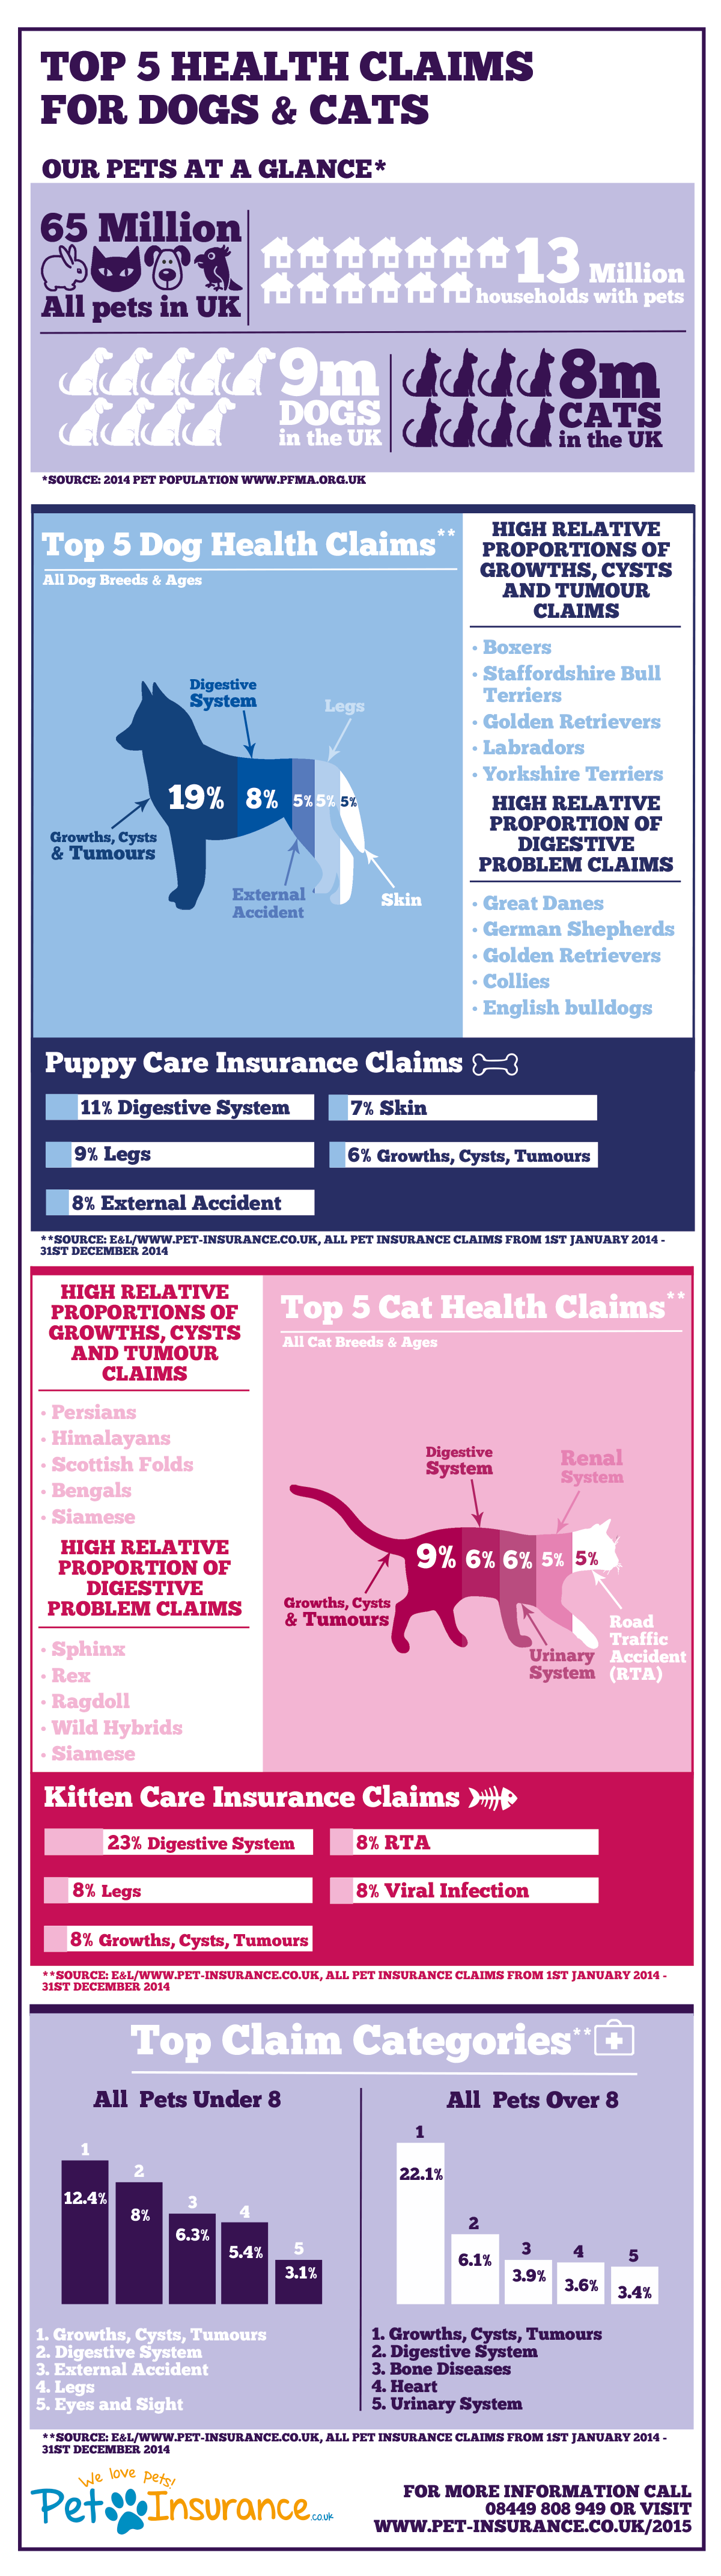 Infographic showing stats for the most frequent types of health claims for dogs and cats in the UK